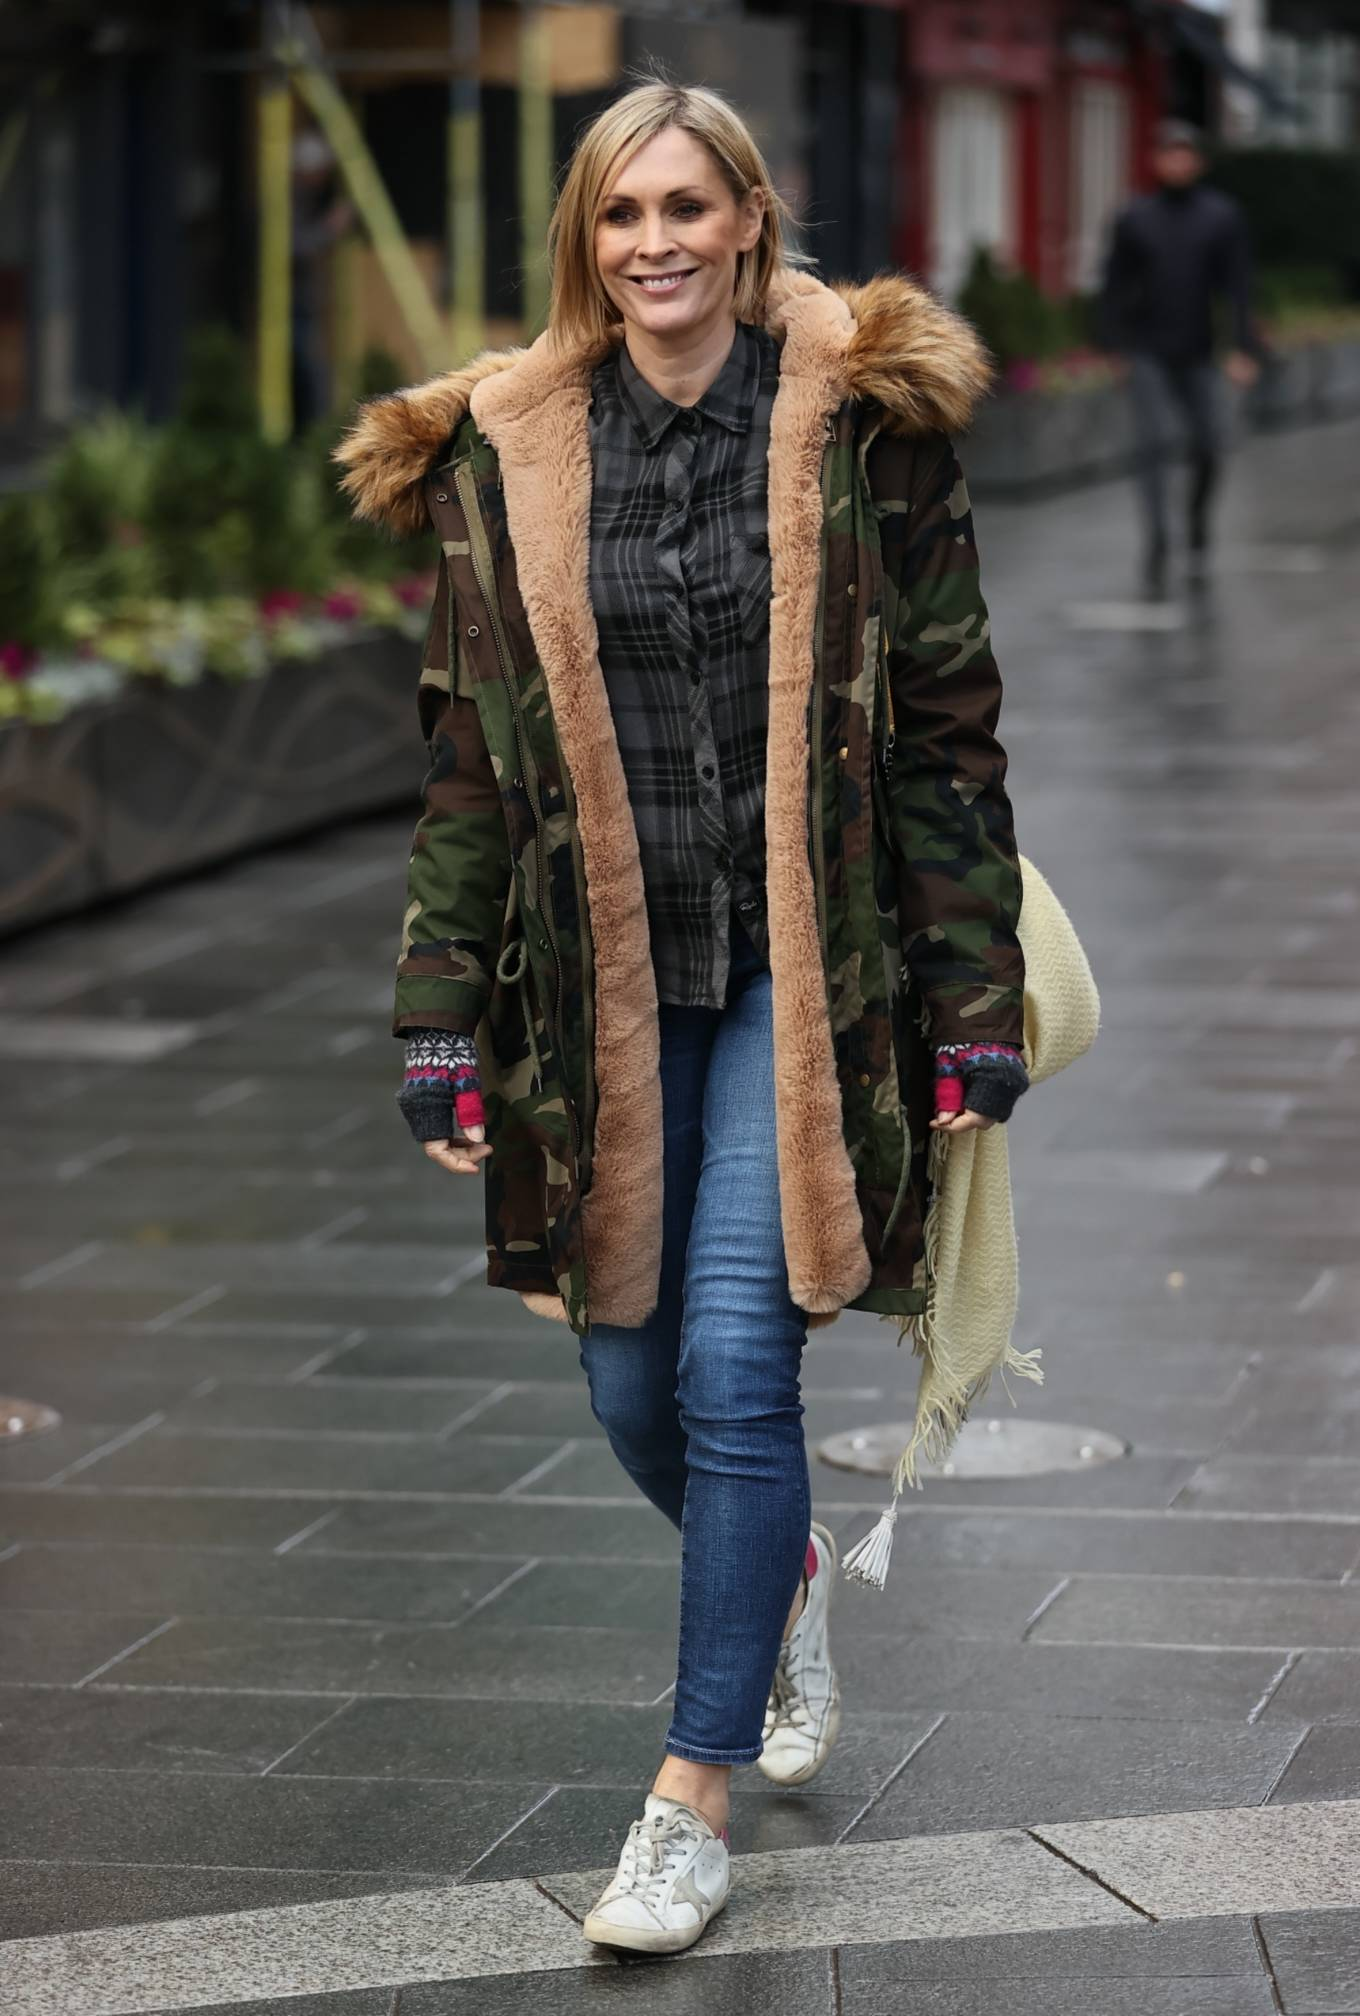 Jenni Falconer - In camouflage coat at Smooth radio in London